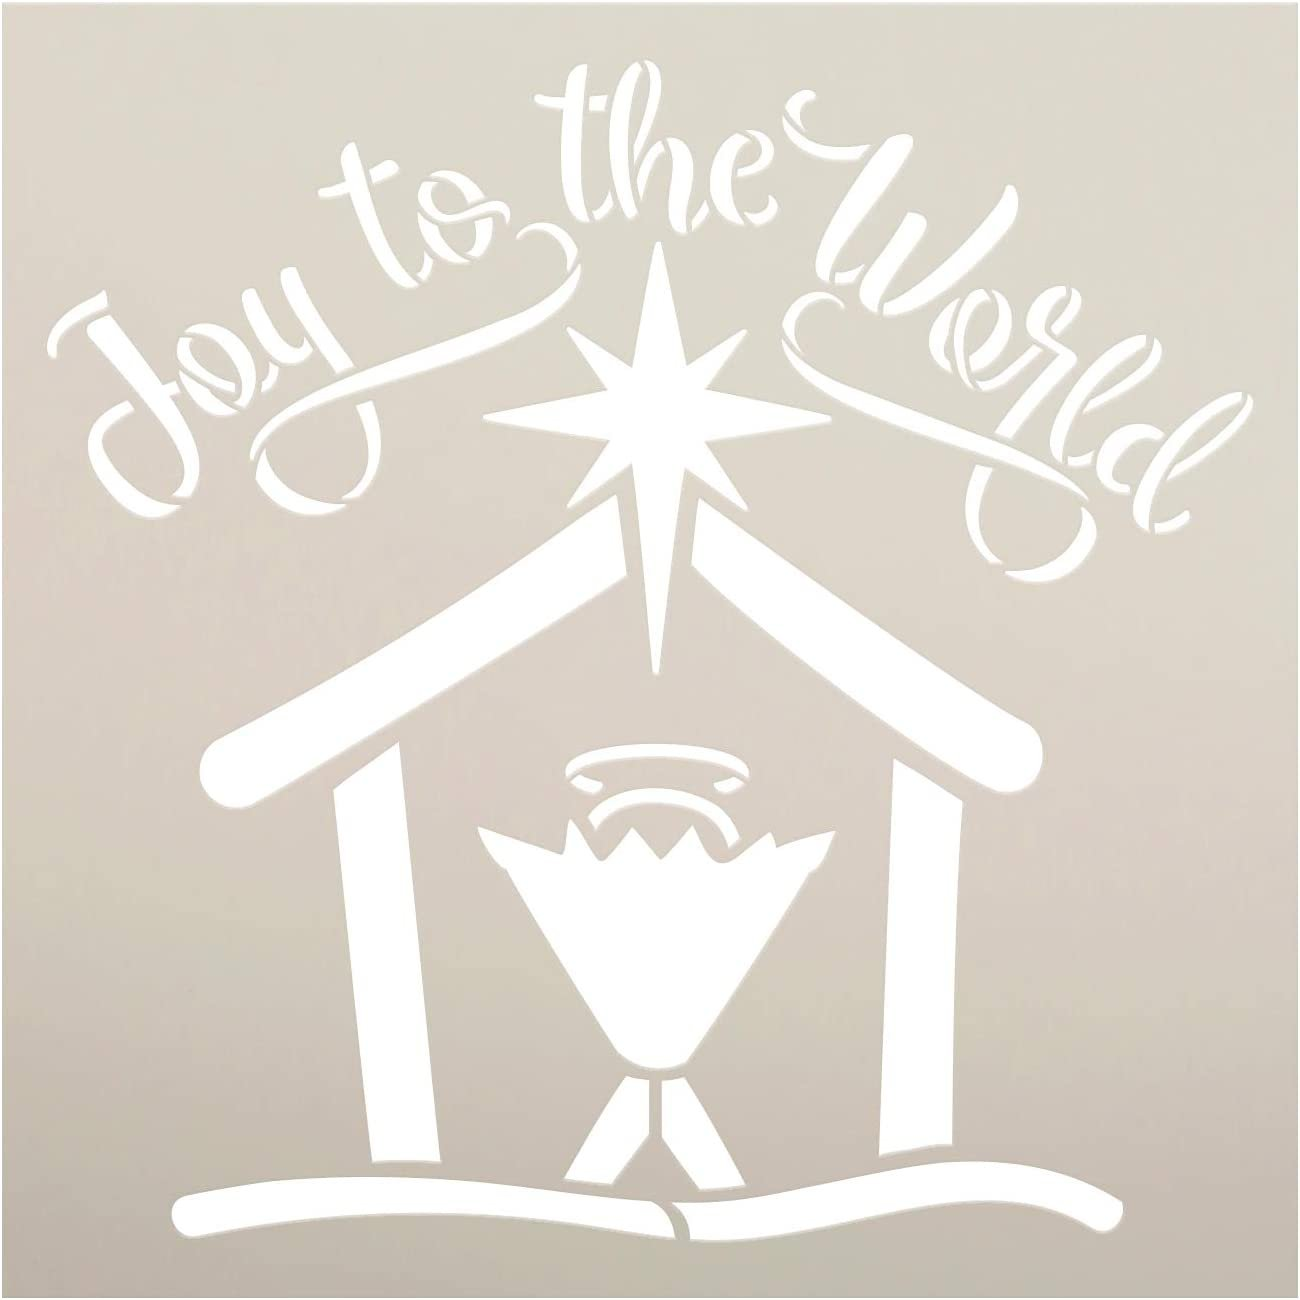 Joy to The World Nativity Stencil by StudioR12   DIY Christmas Star Holiday Home Decor   Craft & Paint Wood Sign   Reusable Mylar Template   Faith Baby Jesus Gift   Select Size